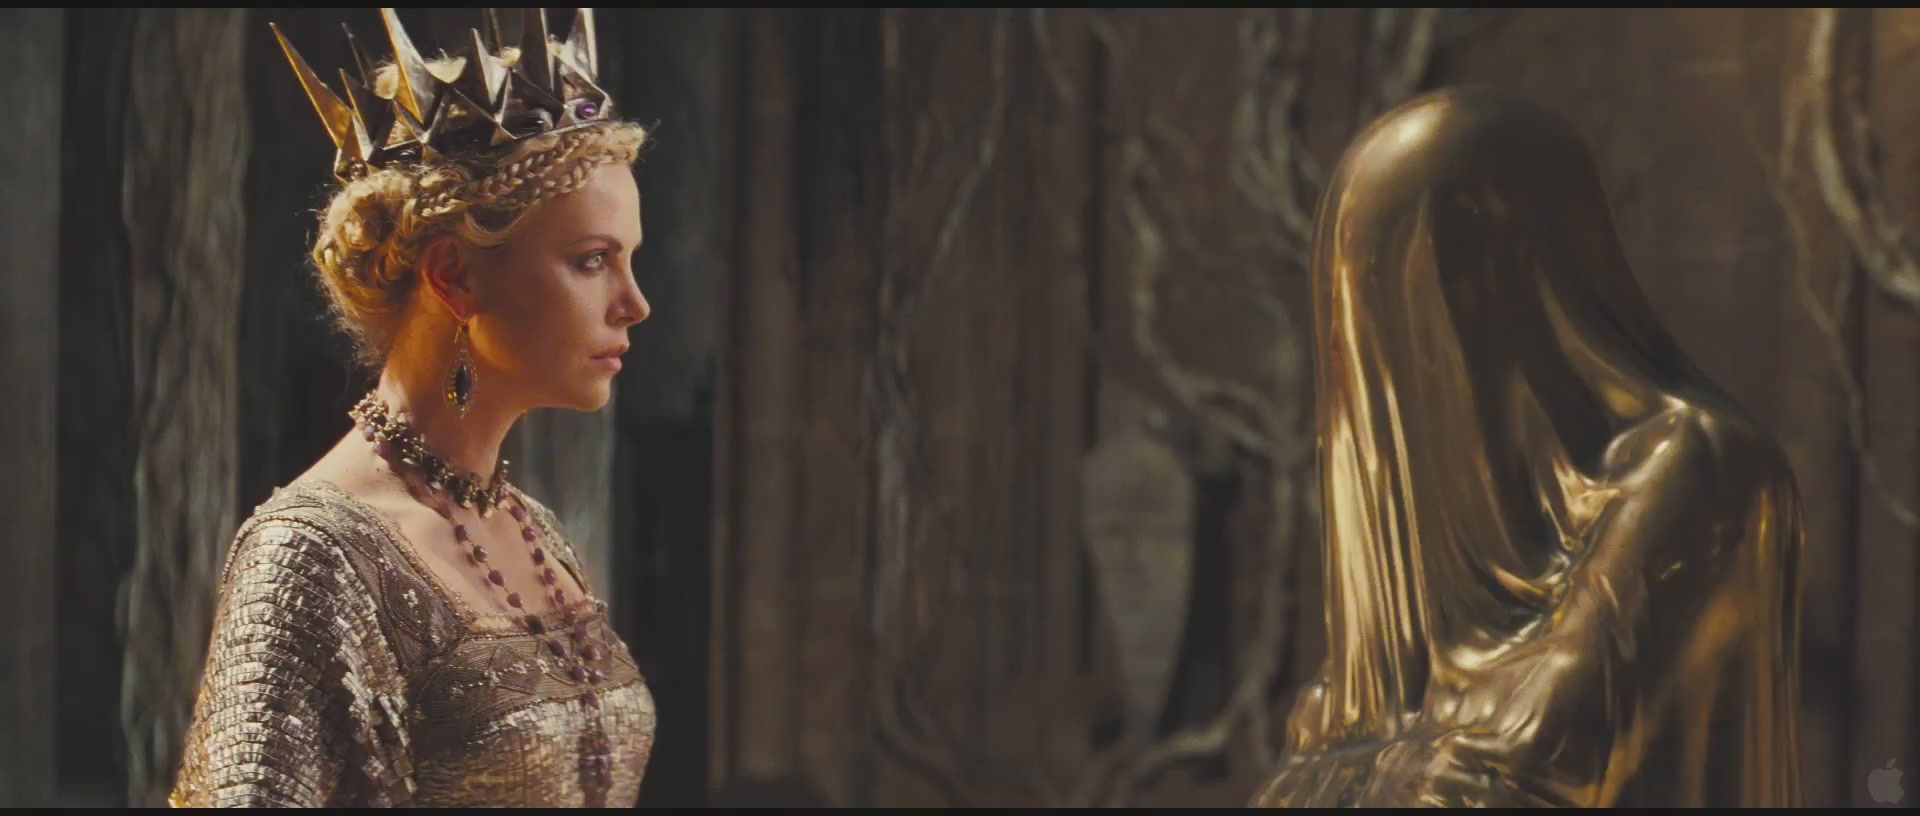 Snow-White-and-the-Huntsman-official-Trailer-1-HQ-charlize-theron-26721465-1920-816